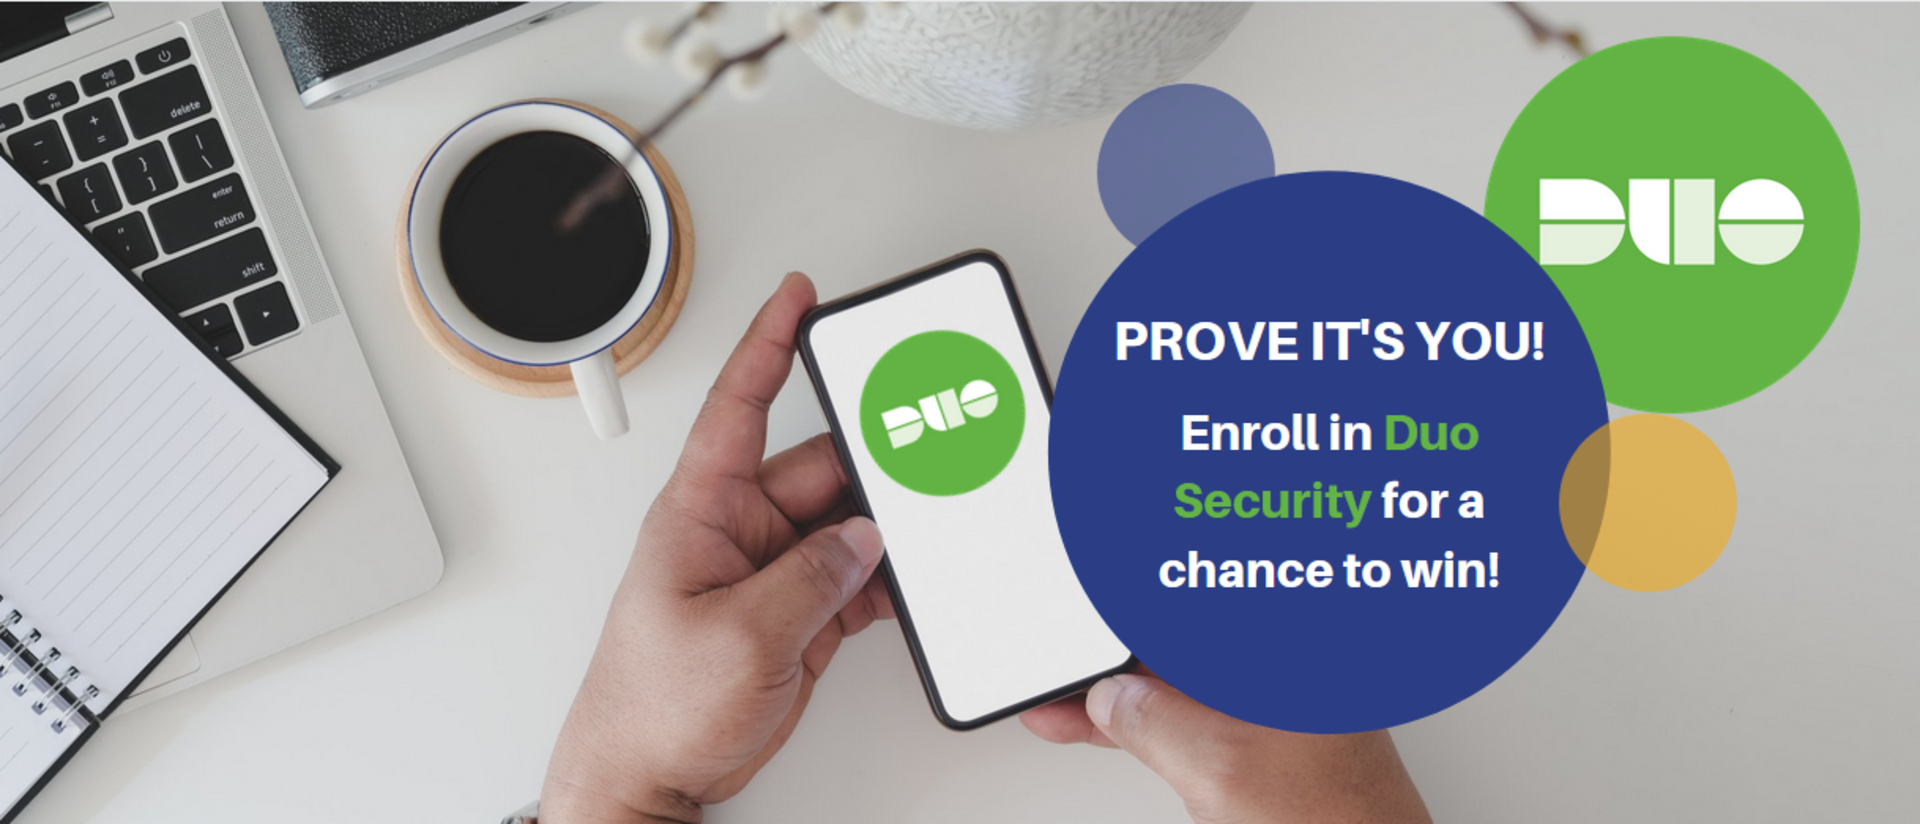 Prove it's you! Enroll in Duo Security for a chance to win!